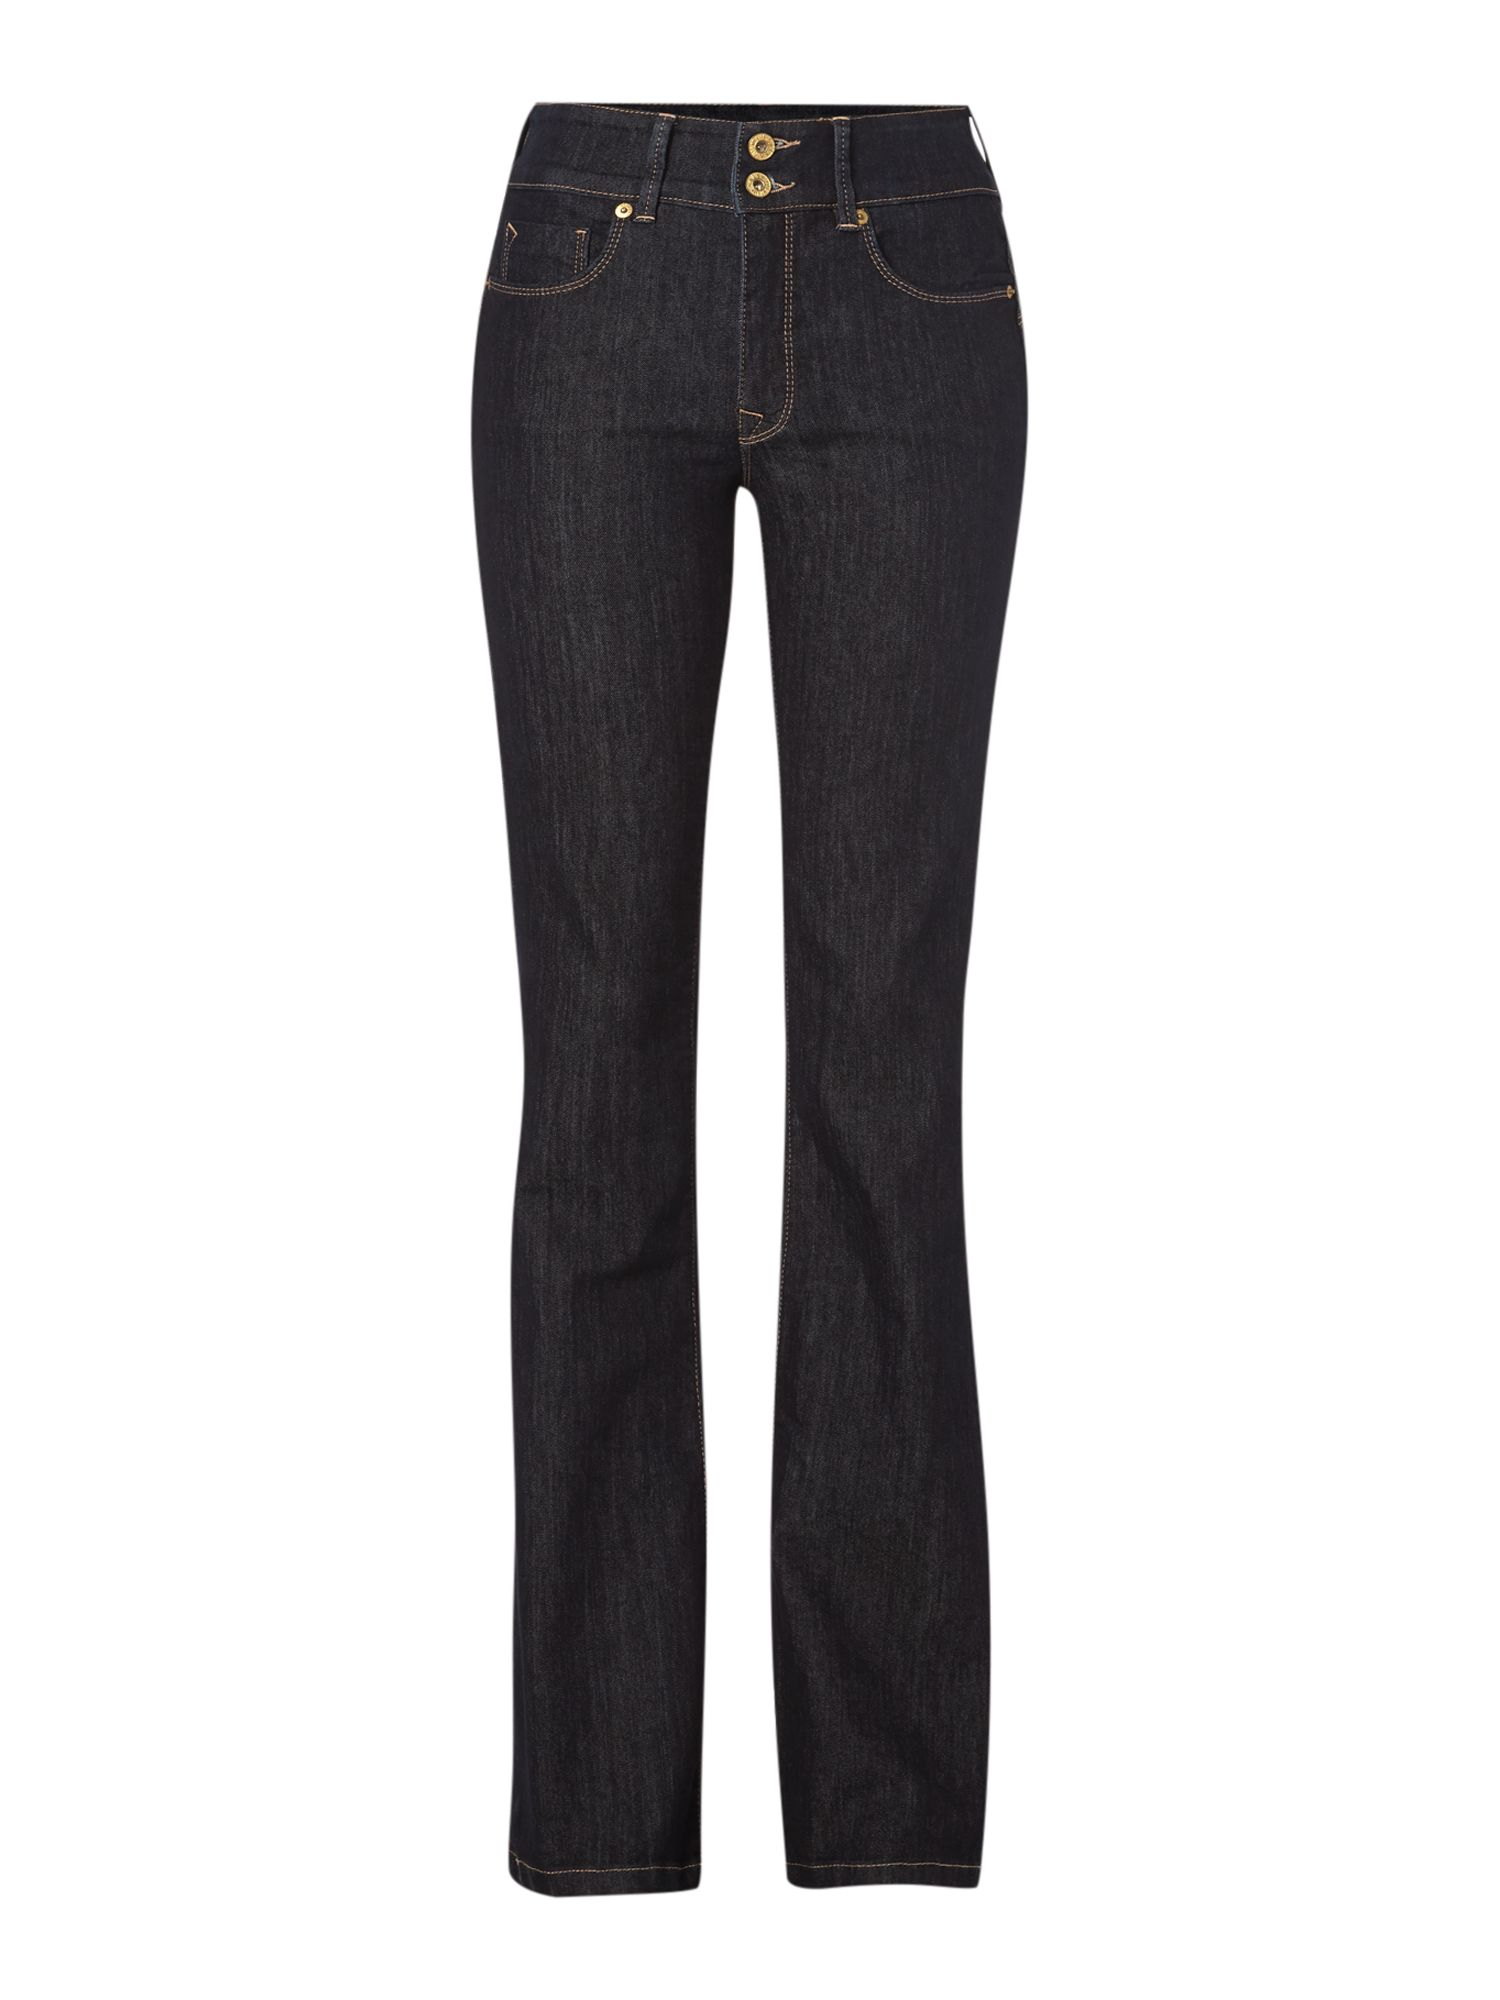 Secret Push-In bootcut jeans in Rinse